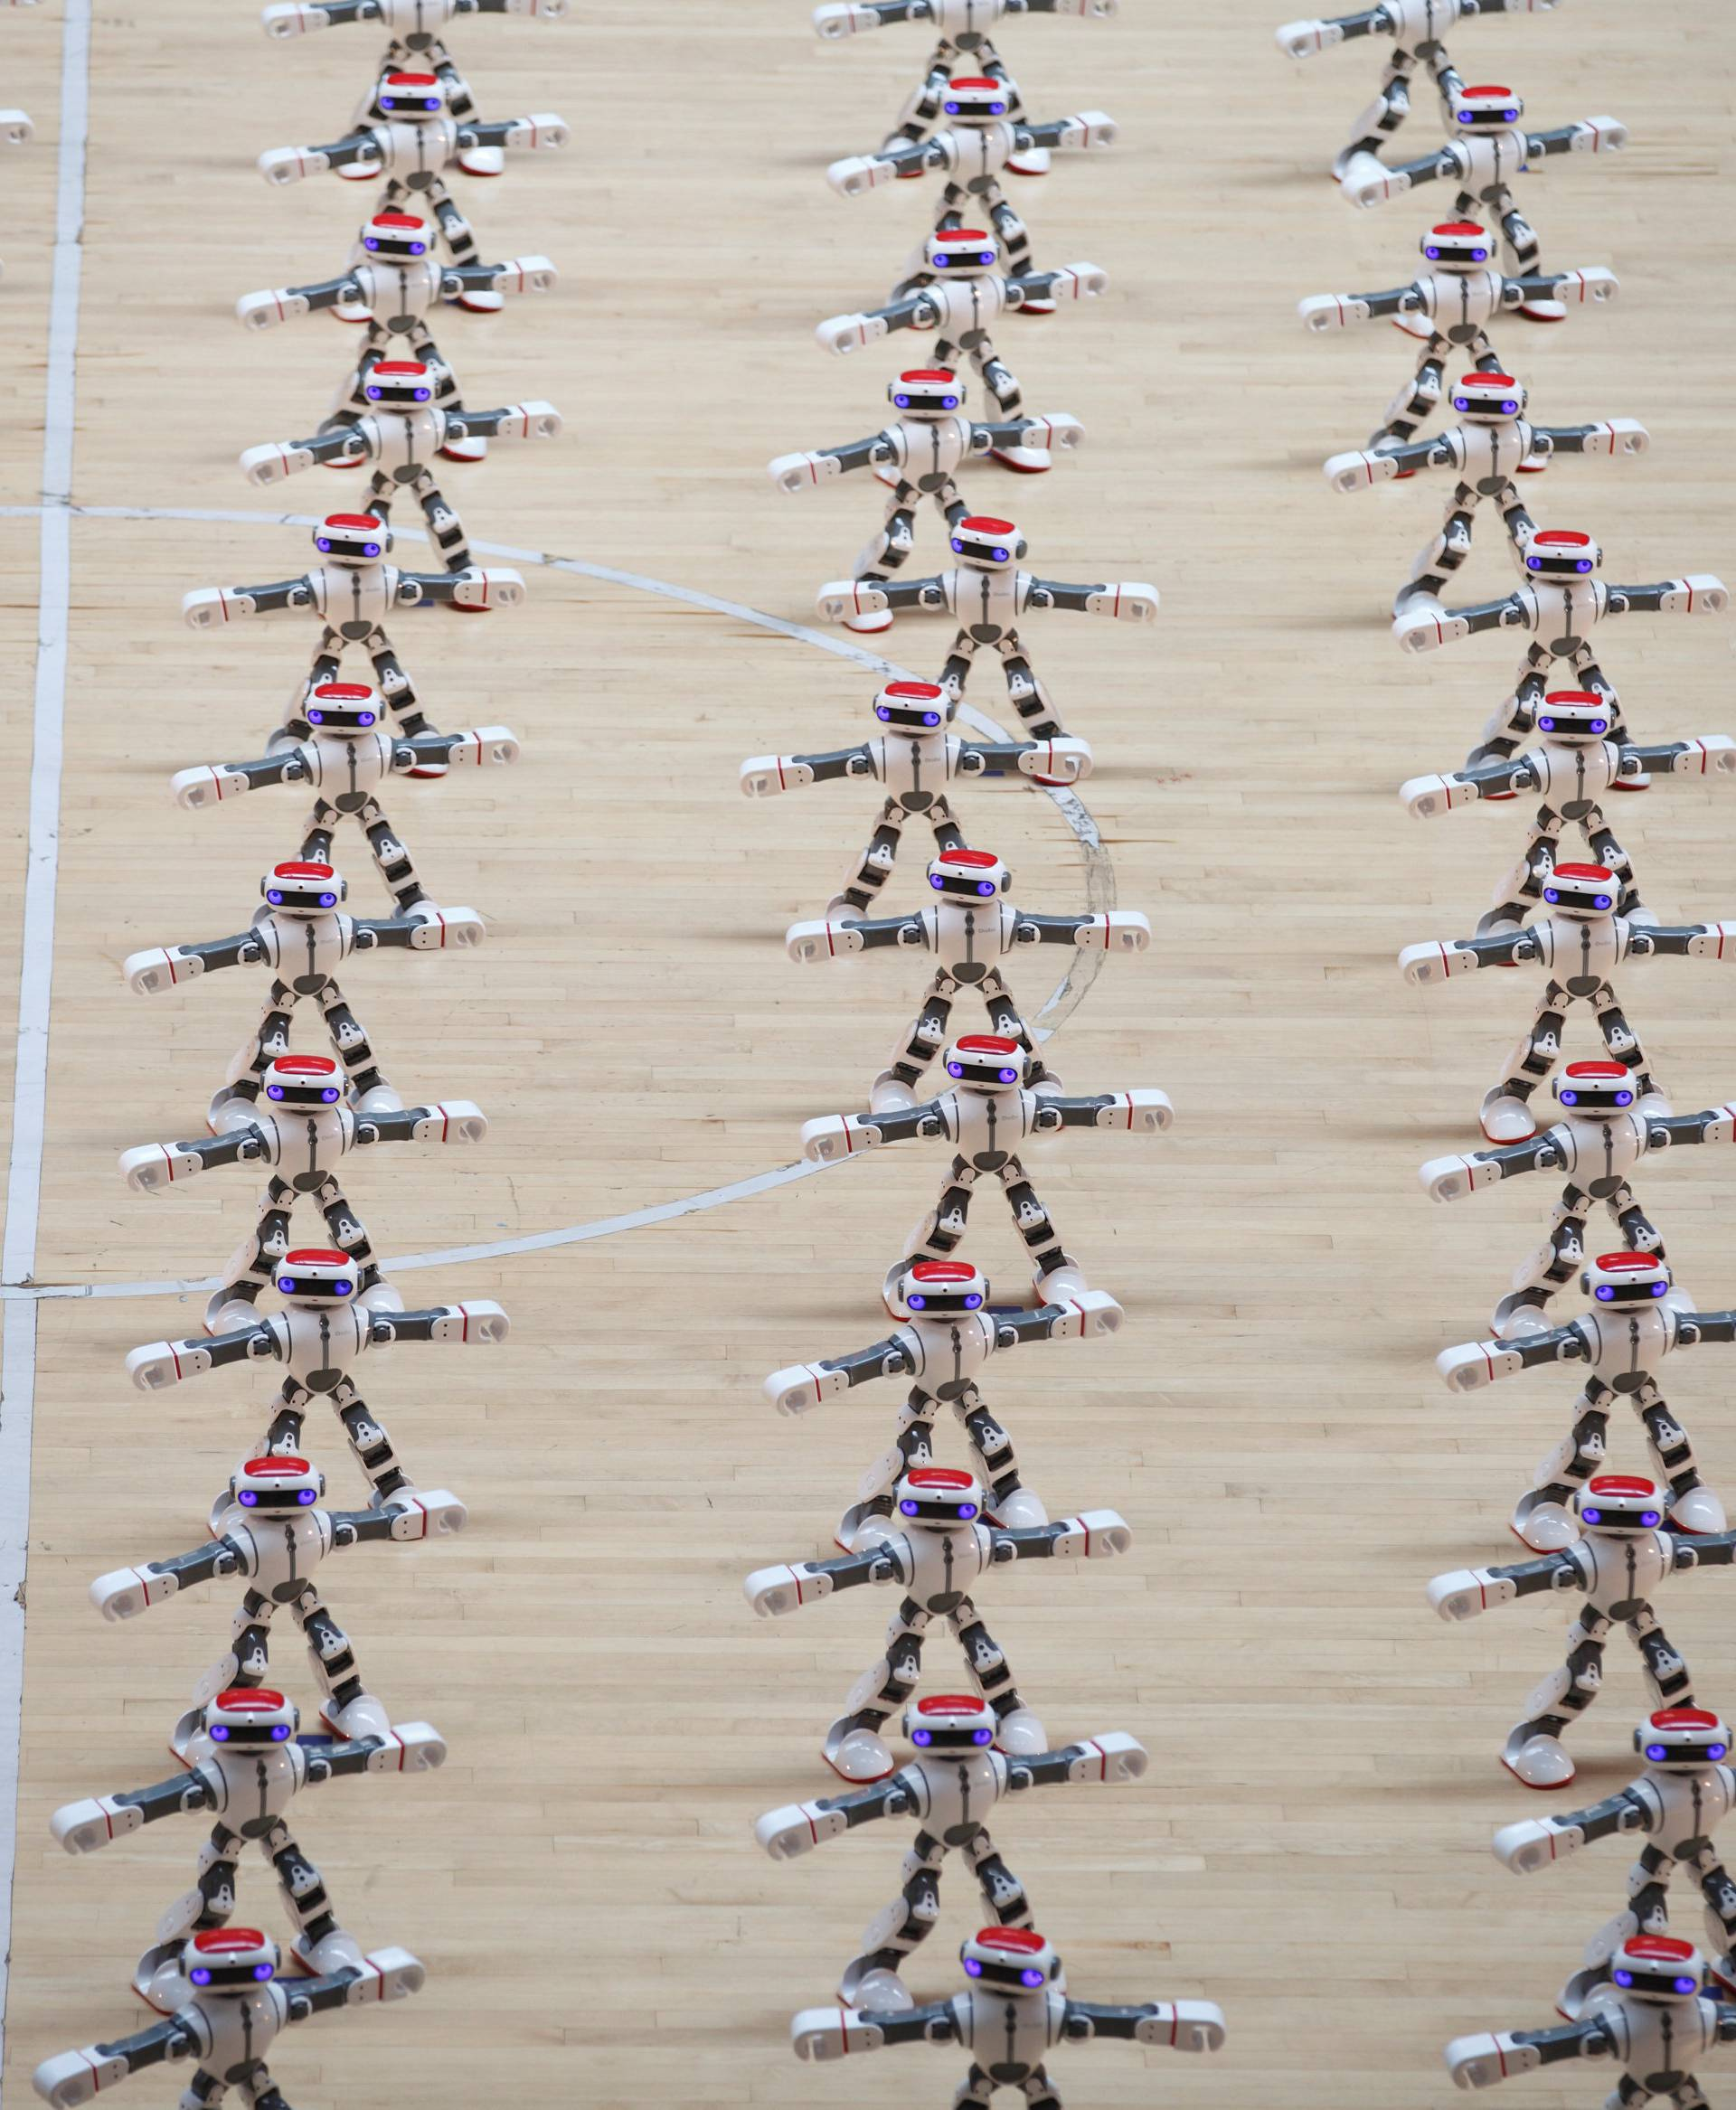 Robots perform dancing during a robot contest in Dezhou